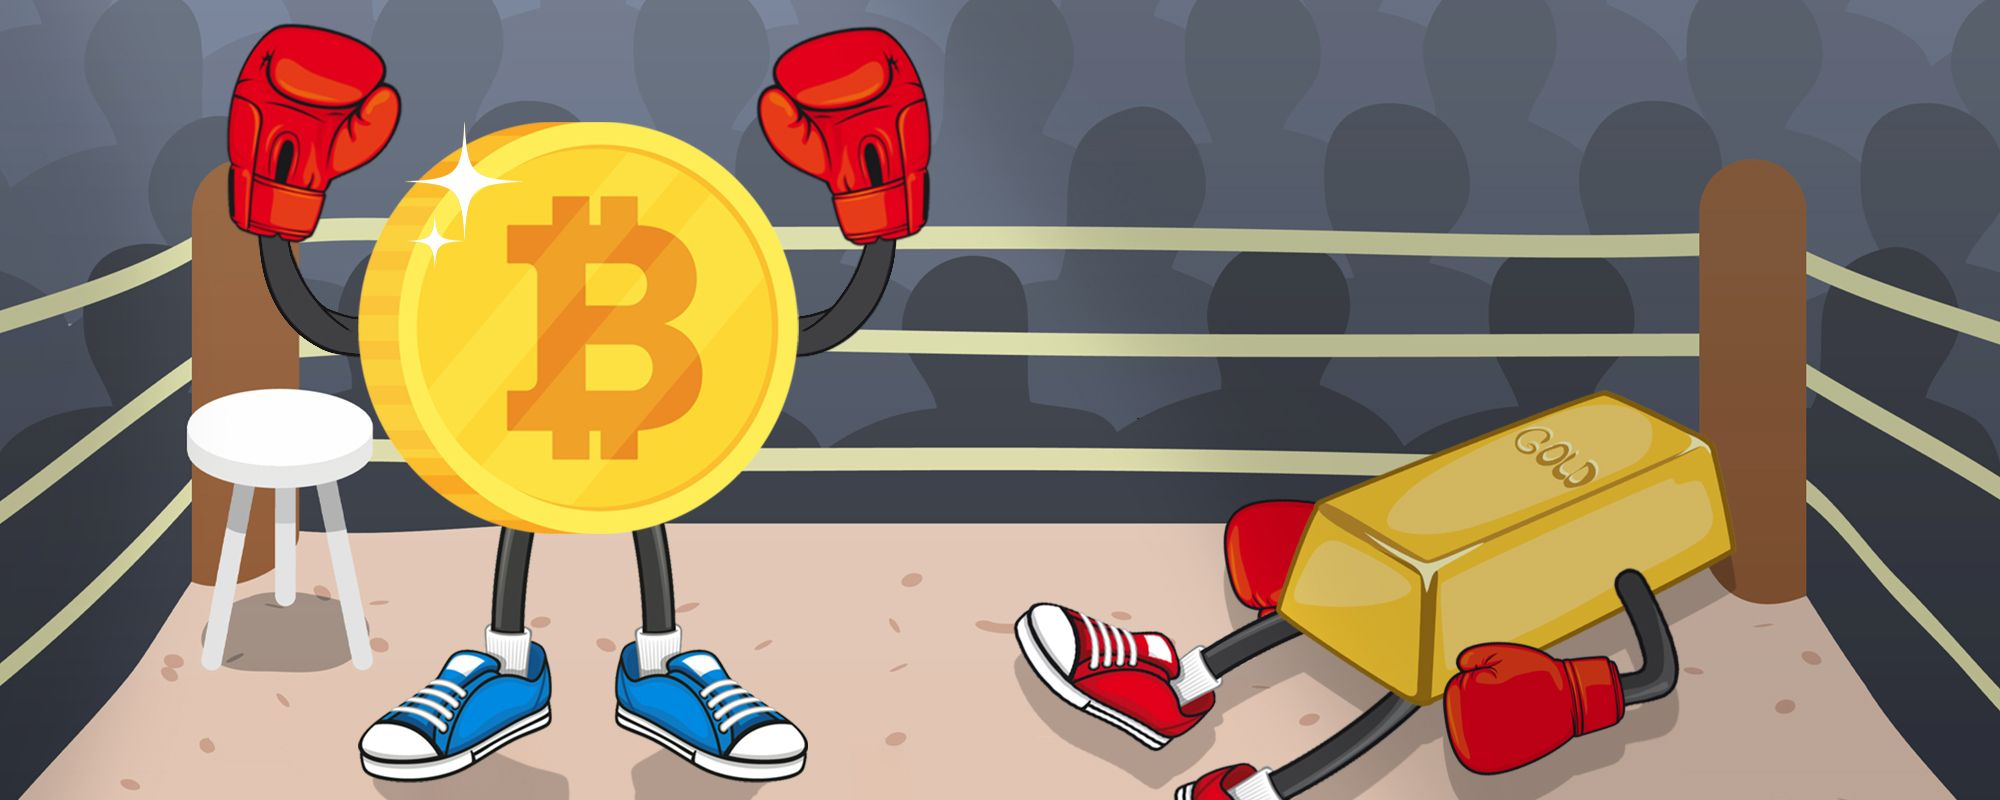 /gold-and-bitcoin-which-one-is-a-better-investment-dlk33e9 feature image